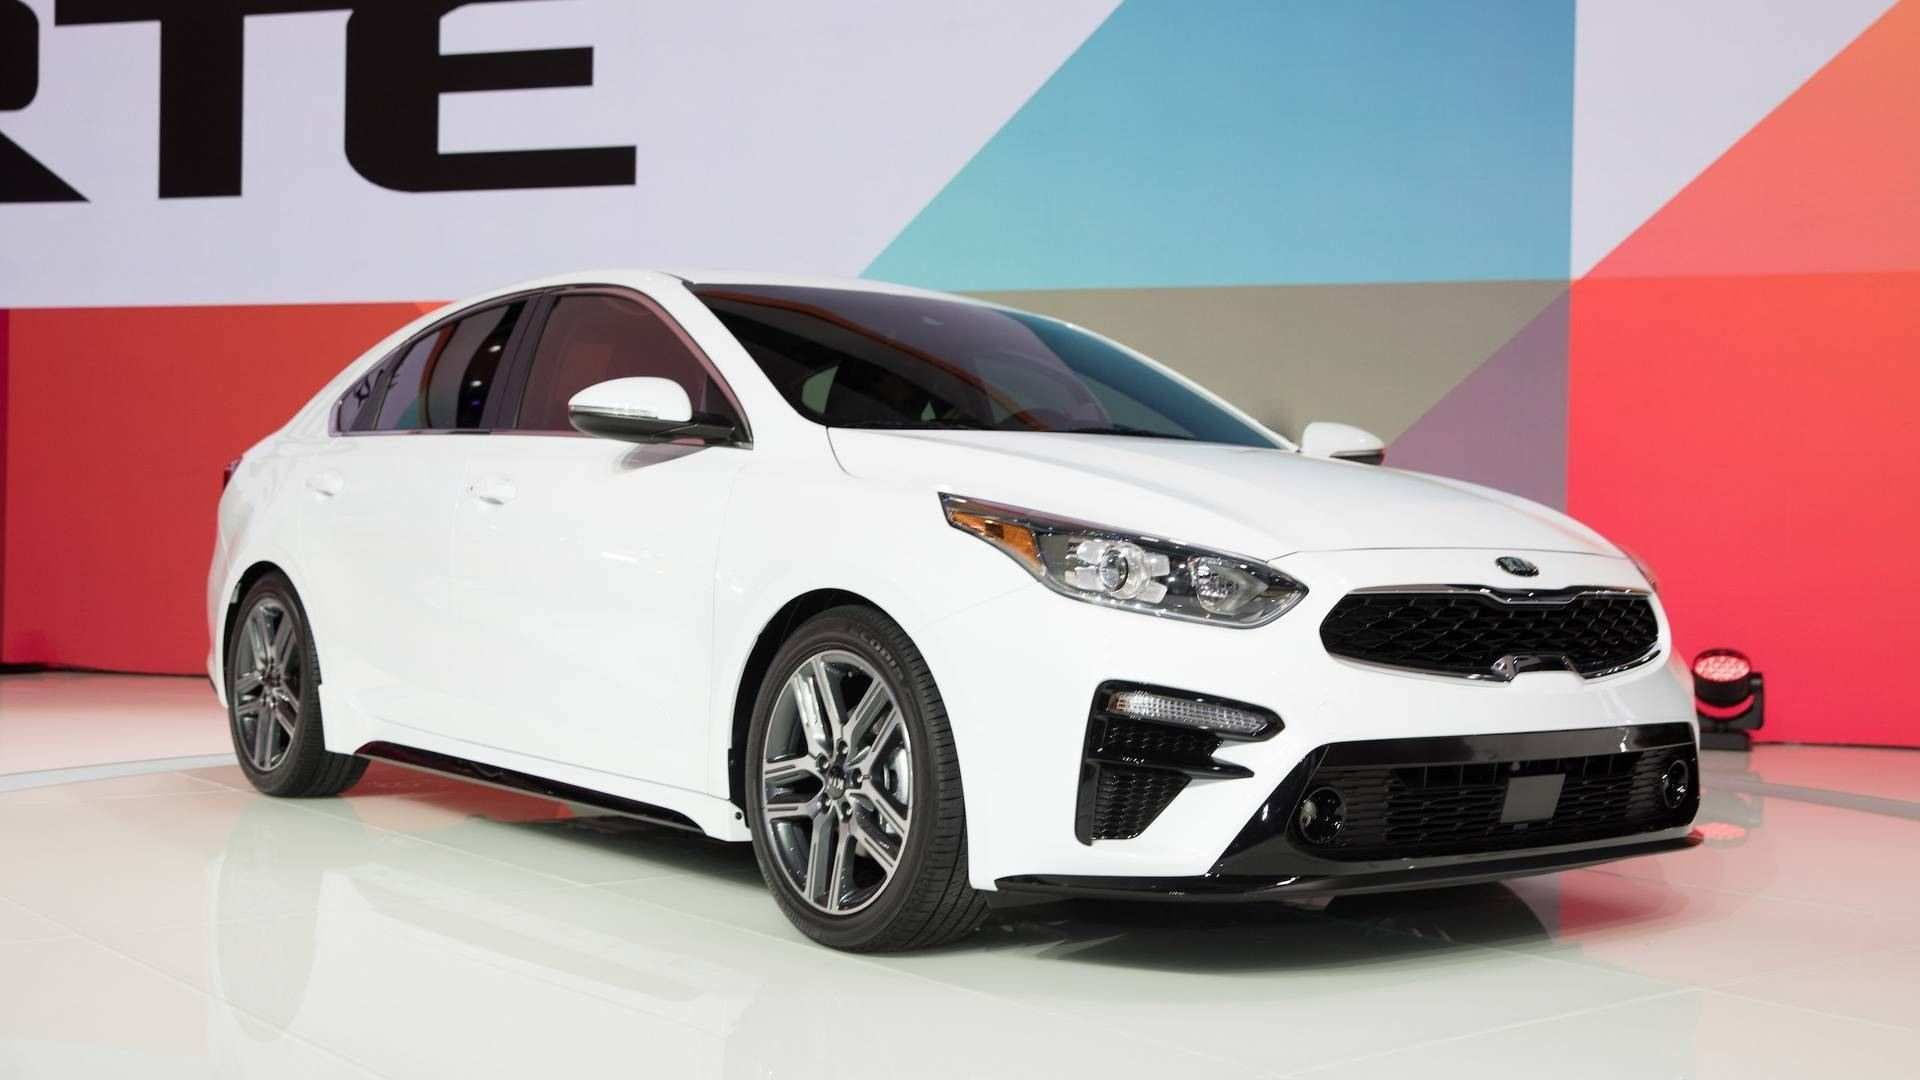 14 Great Xe Kia Cerato 2020 Redesign and Concept for Xe Kia Cerato 2020